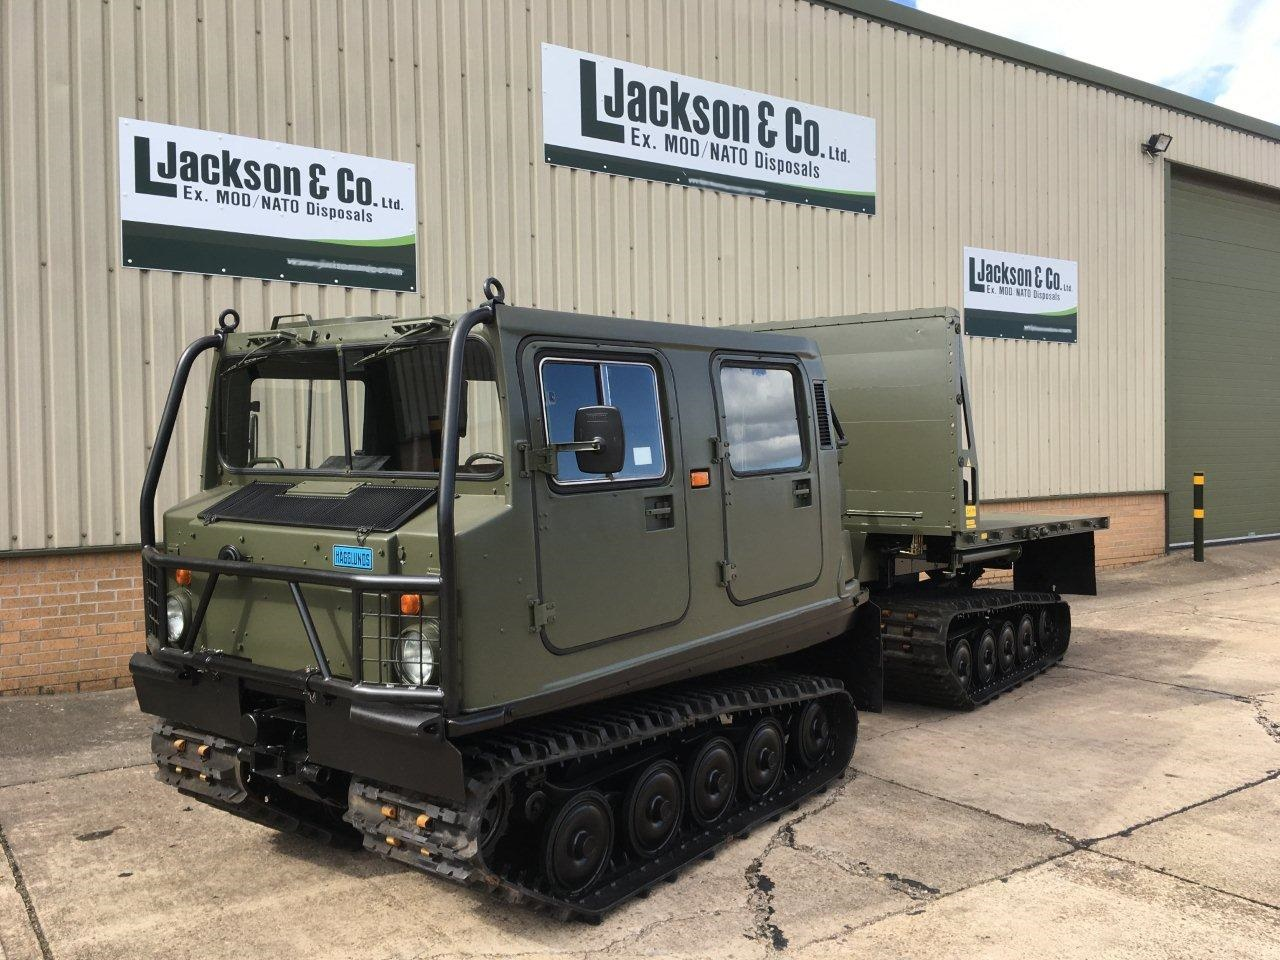 Hagglund Bv206 Load Carrier with Crane for sale | military vehicles